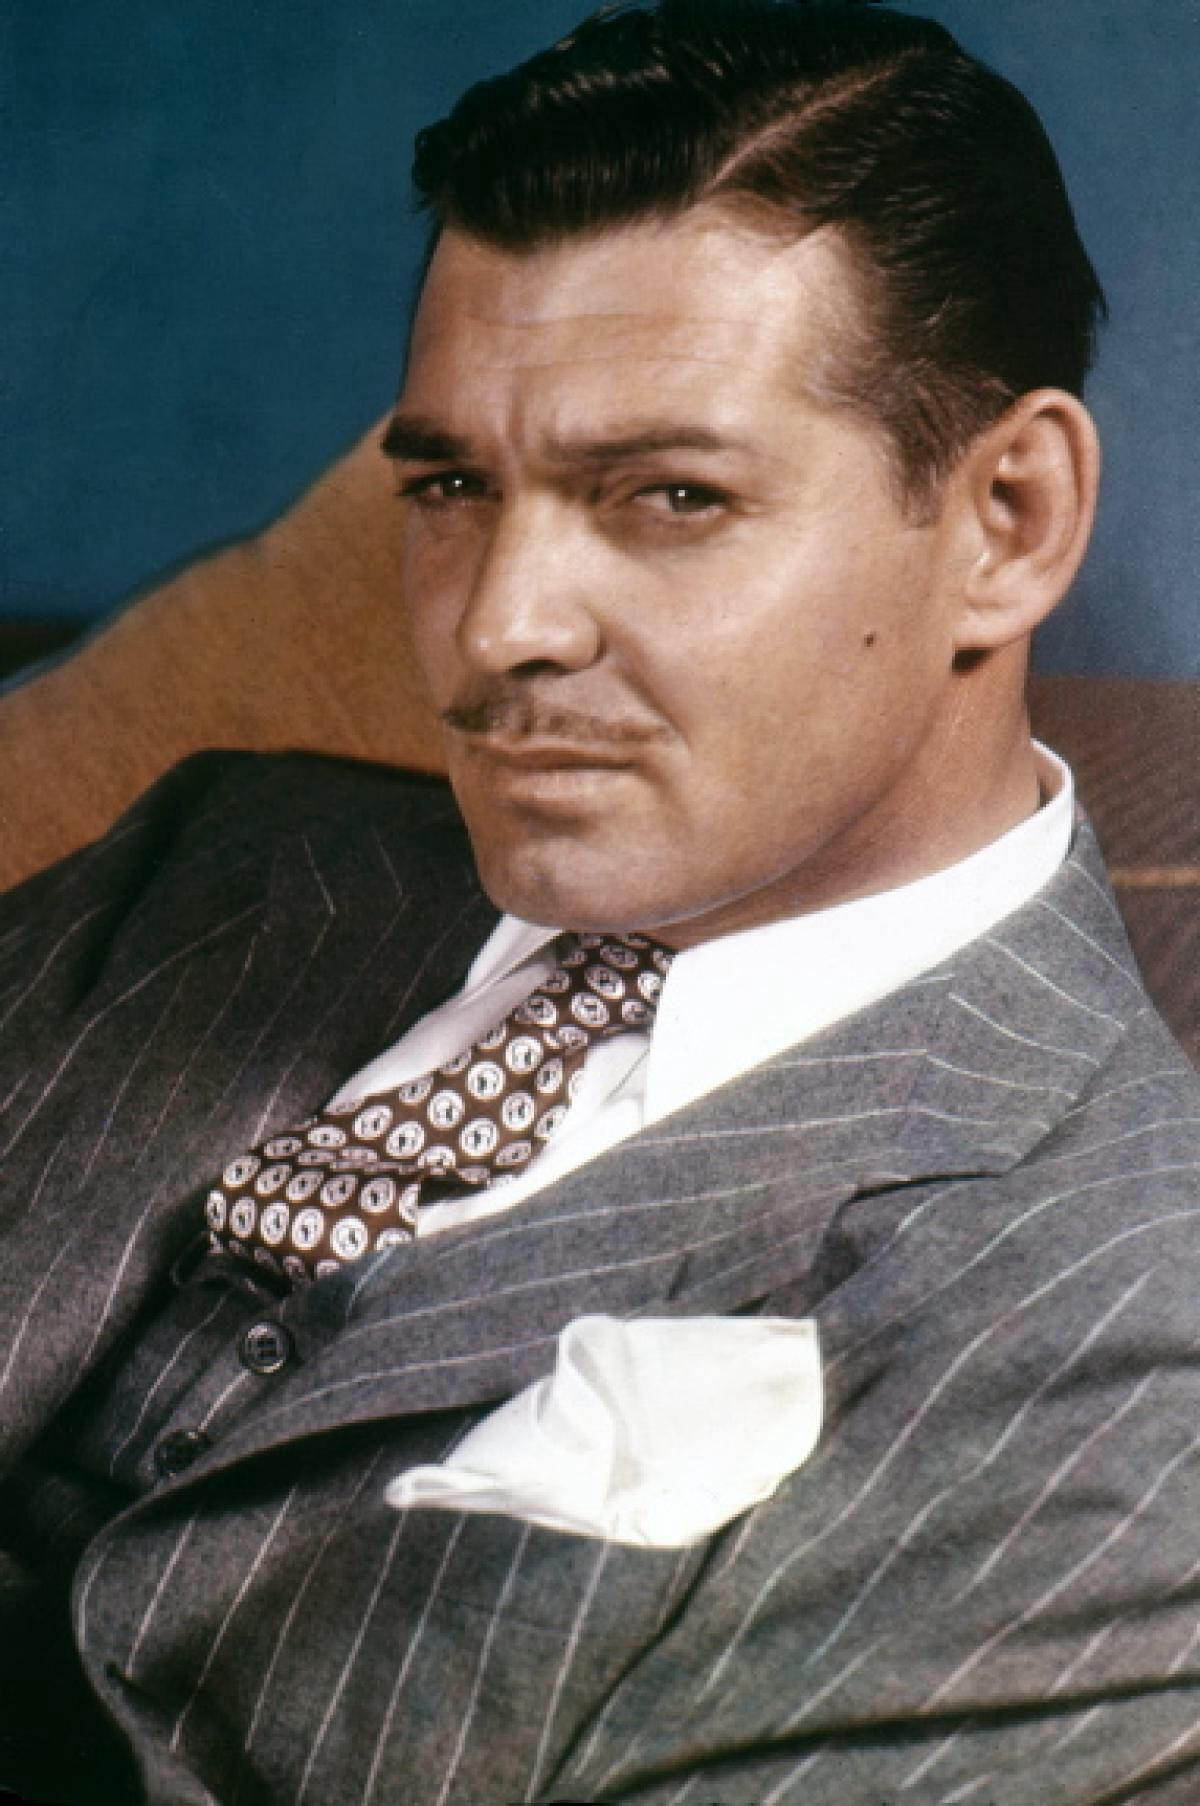 Pin By Claudia Middleton On Men Men Men Celebrity Photos Clark Gable Hollywood Actor